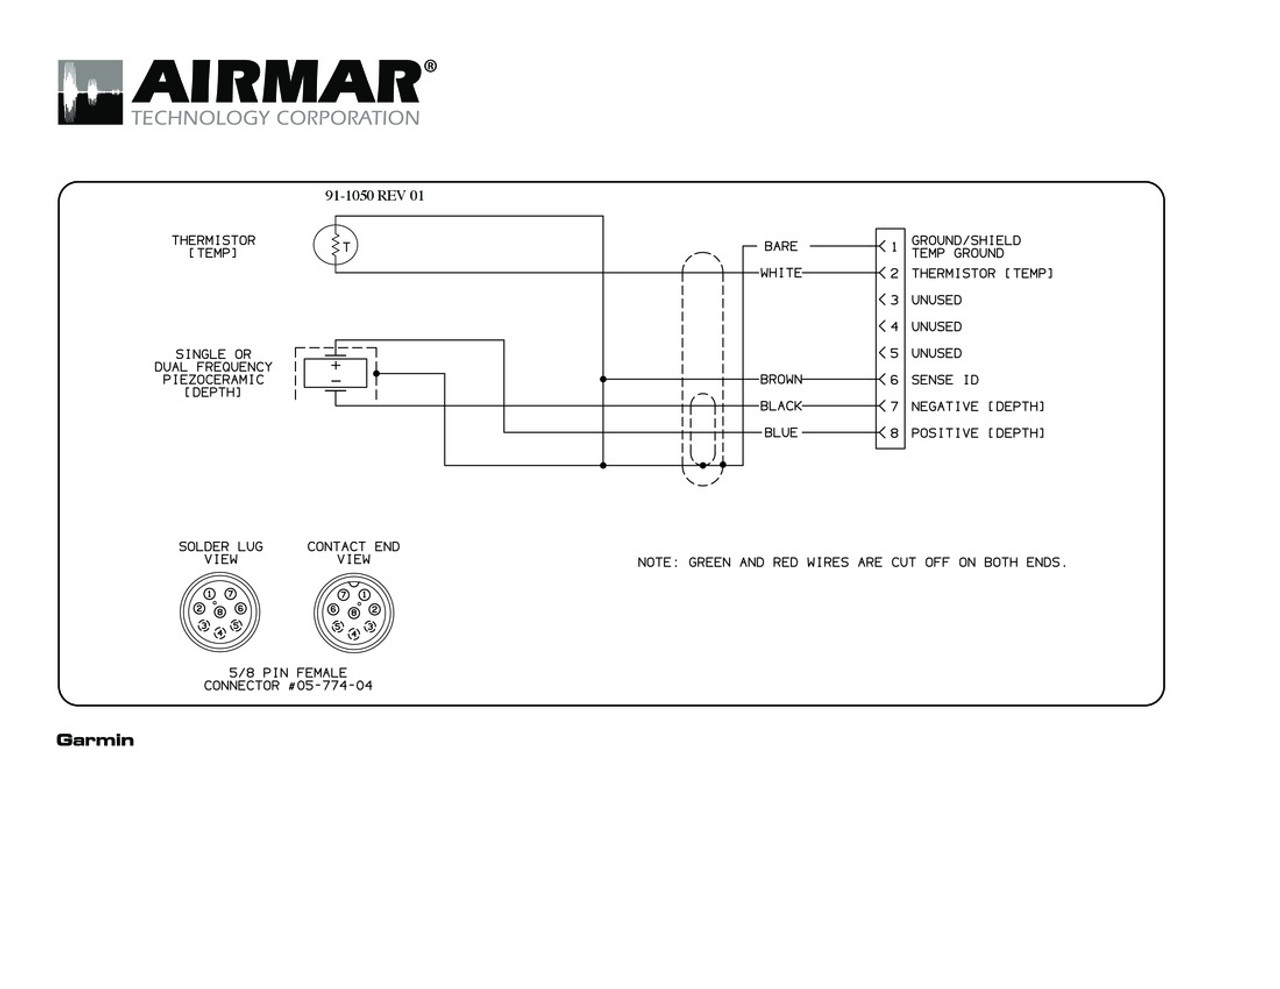 [WQZT_9871]  Airmar Wiring Diagram Garmin P319 8 pin (D,T) | Blue Bottle Marine | Airmar Wiring Diagrams |  | Blue Bottle Marine